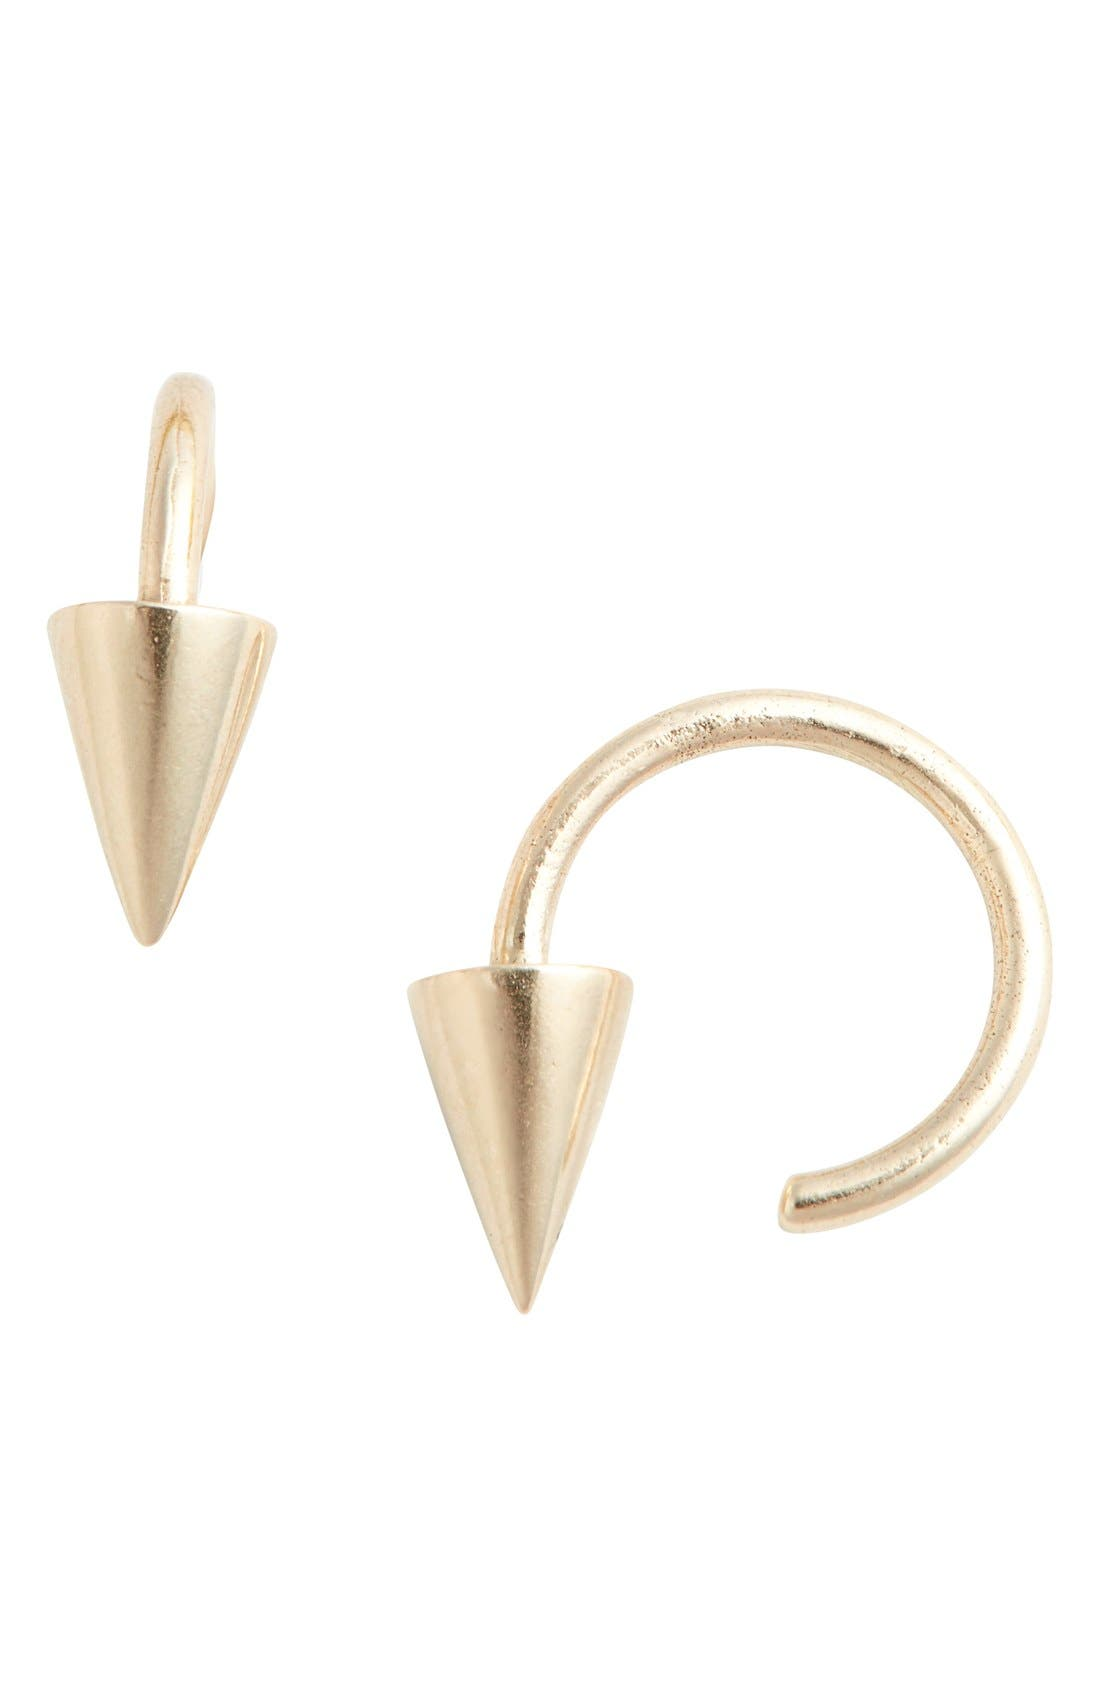 JULIEN DAVID 'Pierce Medium' Loop Earrings